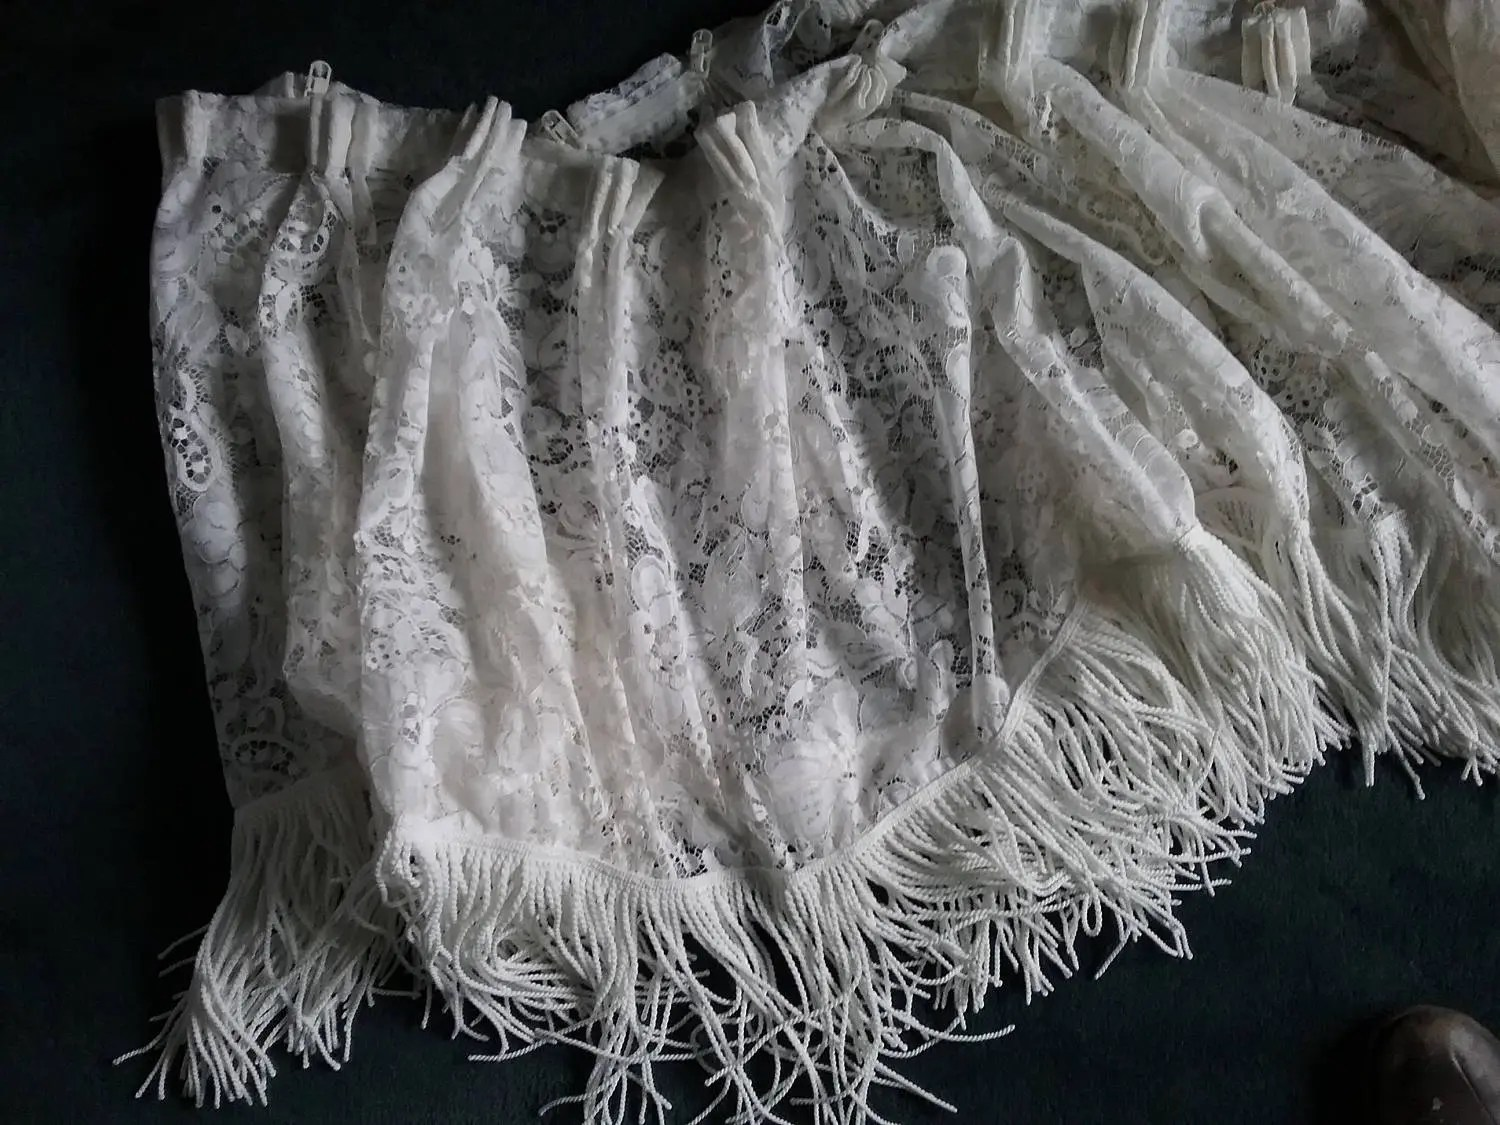 Volant Gardine Old Curdine Lace Wide Volant With Long Fringe Short Gardine Tinted White Vintage